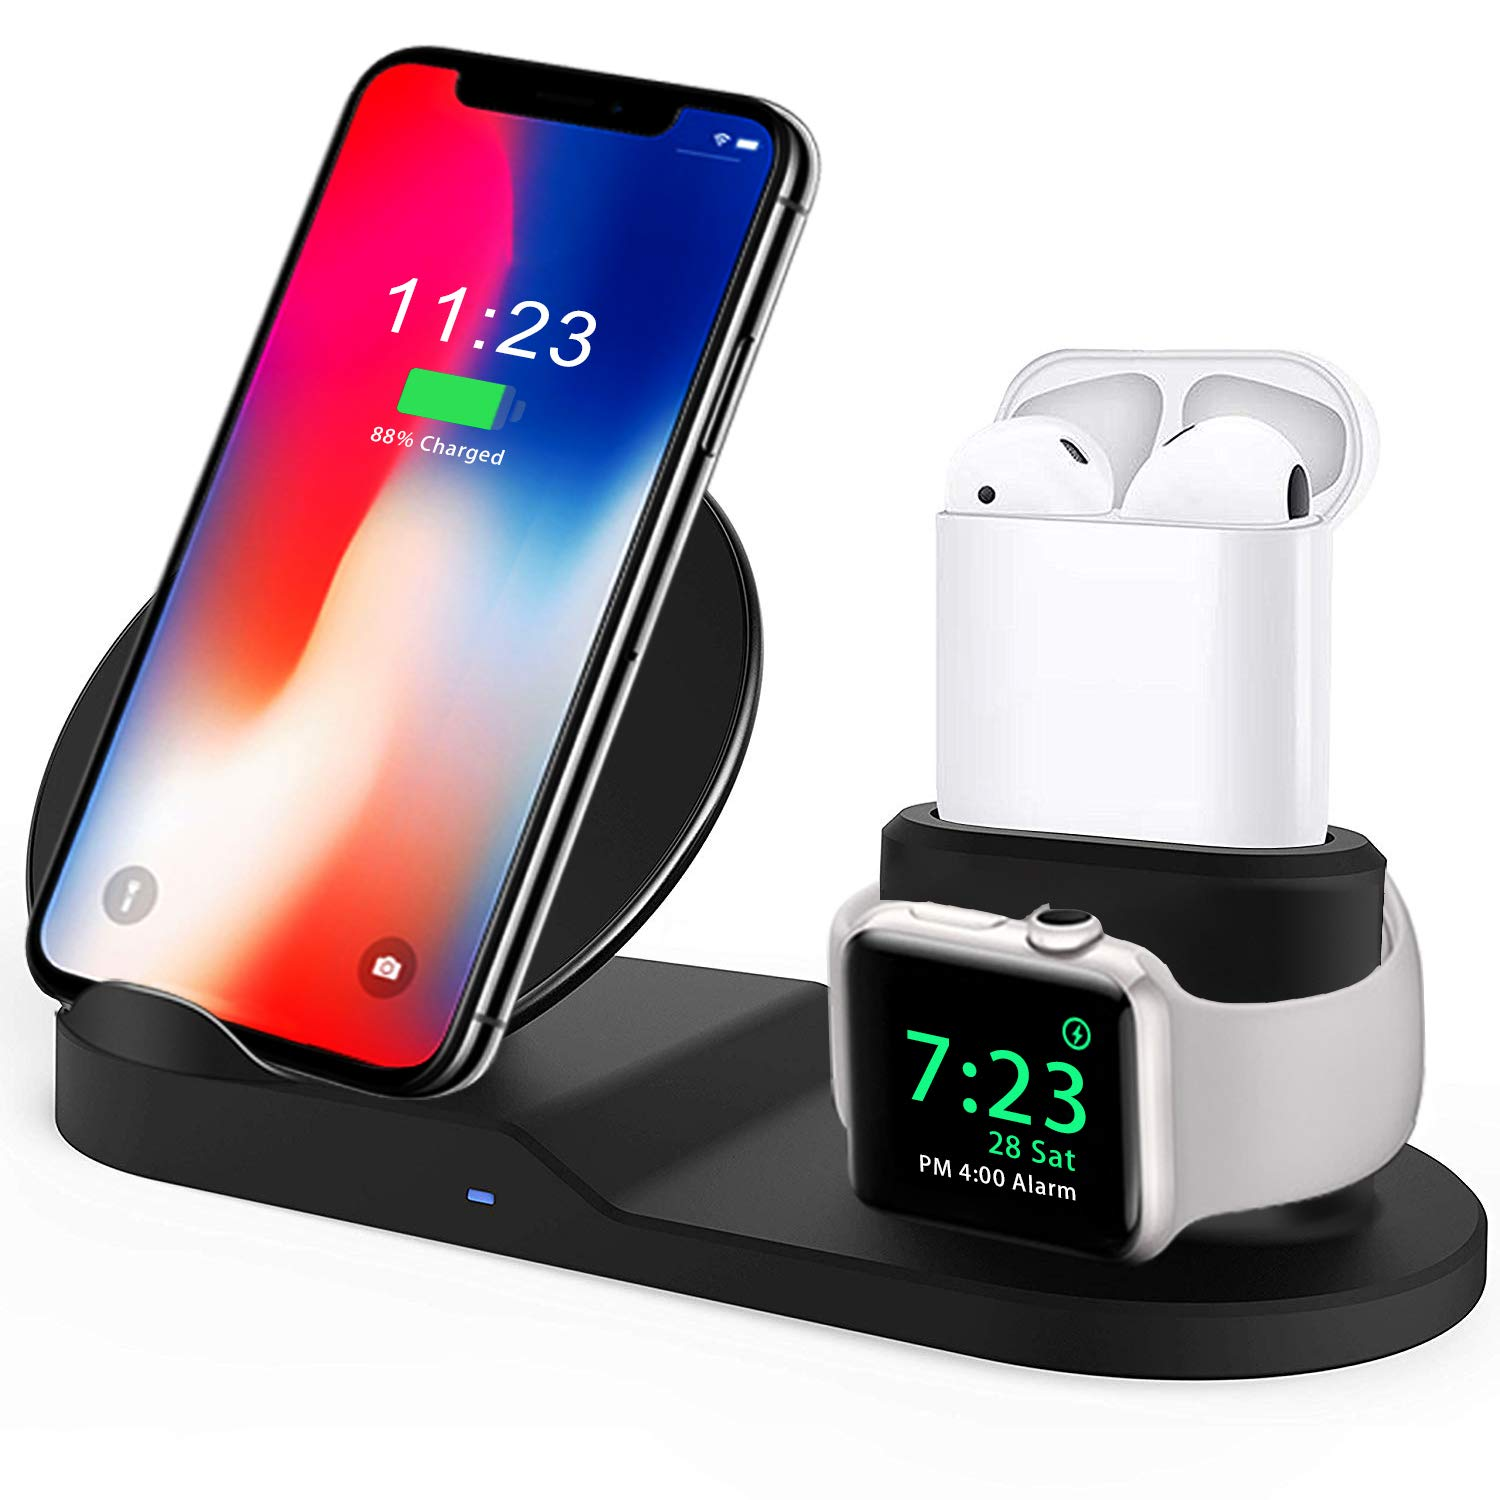 Wireless Charger, Compatible iph one Charger, 3-in-1 Replacement Charging Station for iph one Xs/X Max/XR/X/8/8Plus/Watch (Black)